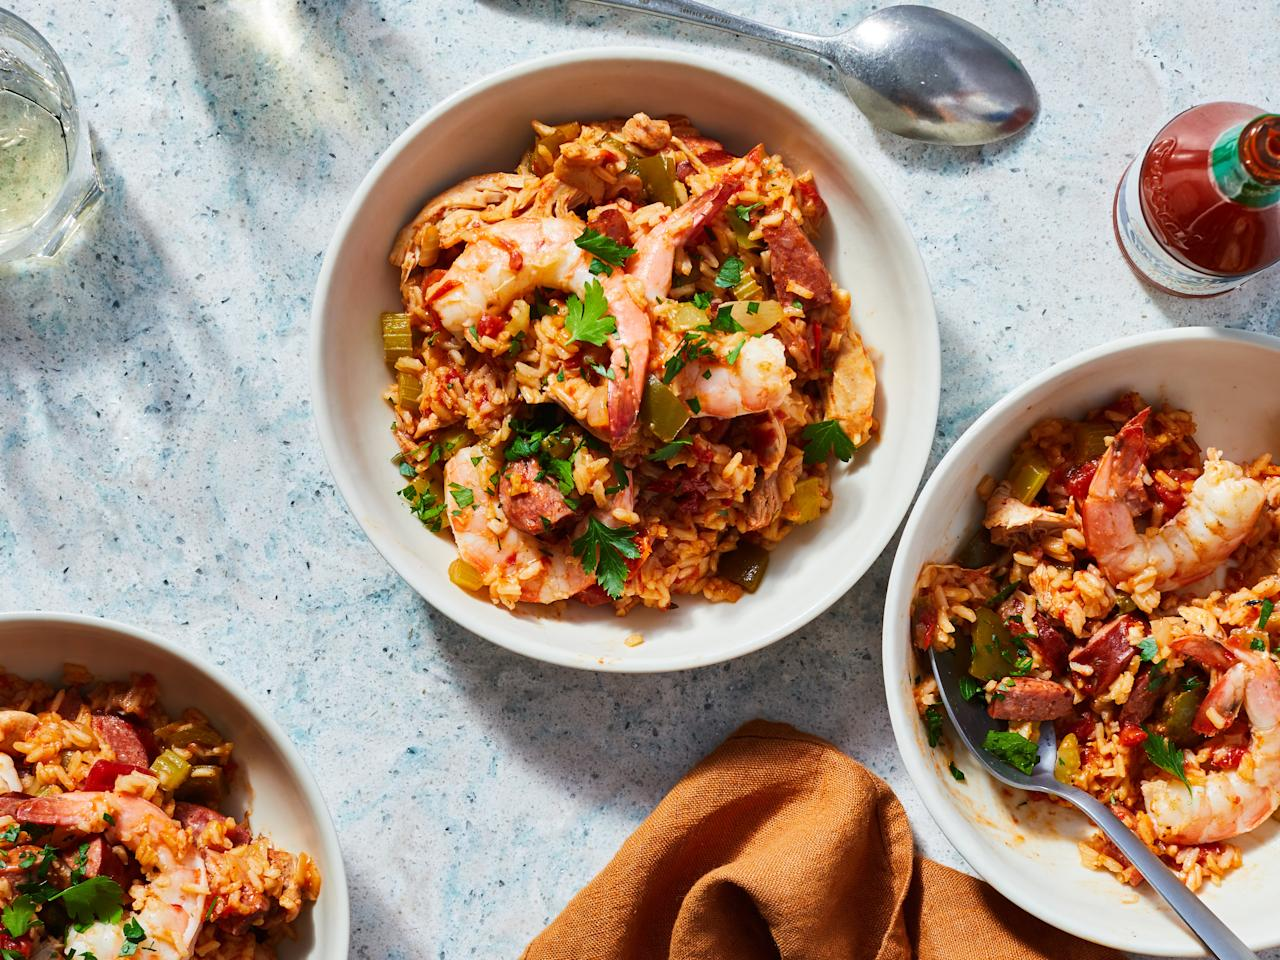 """<p>Have dinner ready when you come home with this ultimate, slow-cooker Jambalaya. Featuring chicken, shrimp and smoked sausage, this classic Creole rice dish is perfect for the <a href=""""http://https://www.myrecipes.com/slow-cooker-recipes"""">slow-cooker </a>as all the flavors blend together over time in a marvelous way. As a simple one-pot meal, bring Jambalaya to your next potluck as a crowd-pleasing dish that doesn't skimp on flavor or presentation. Don't be afraid of making too much because leftover Jambalaya still tastes great warmed up the next day with a splash of your favorite hot sauce.</p> <p><a href=""""https://www.myrecipes.com/recipe/easy-slow-cooker-jambalaya"""">Easy Slow-Cooker Jambalaya Recipe</a></p>"""